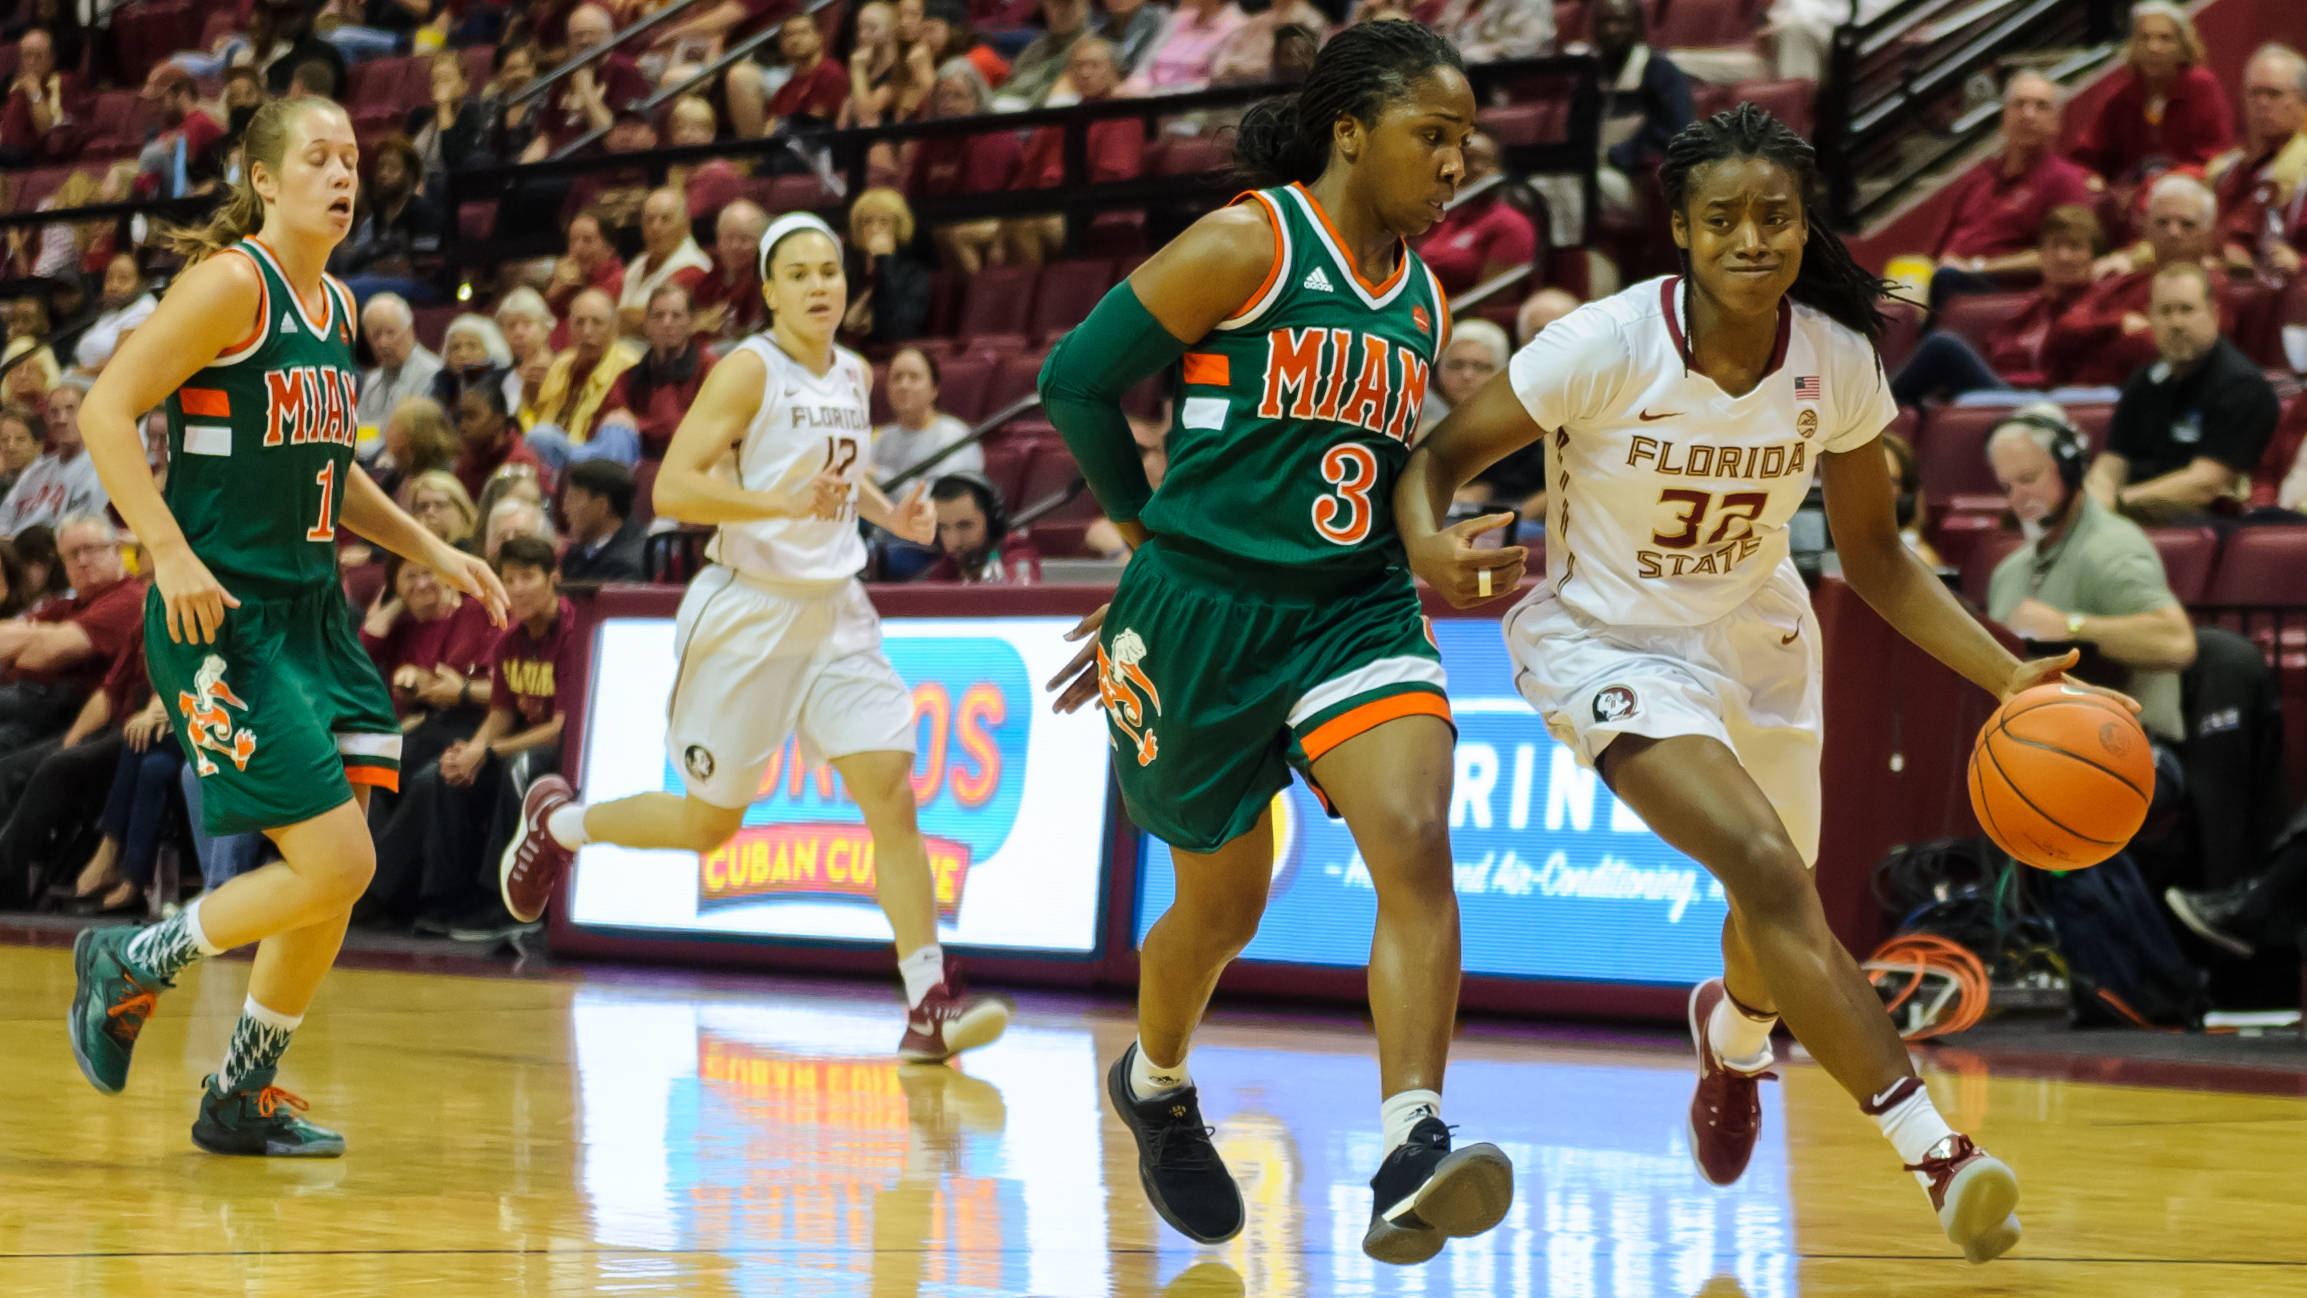 On Feb. 6, FSU defeated Miami to win its seventh straight vs. AP Top 25 teams.